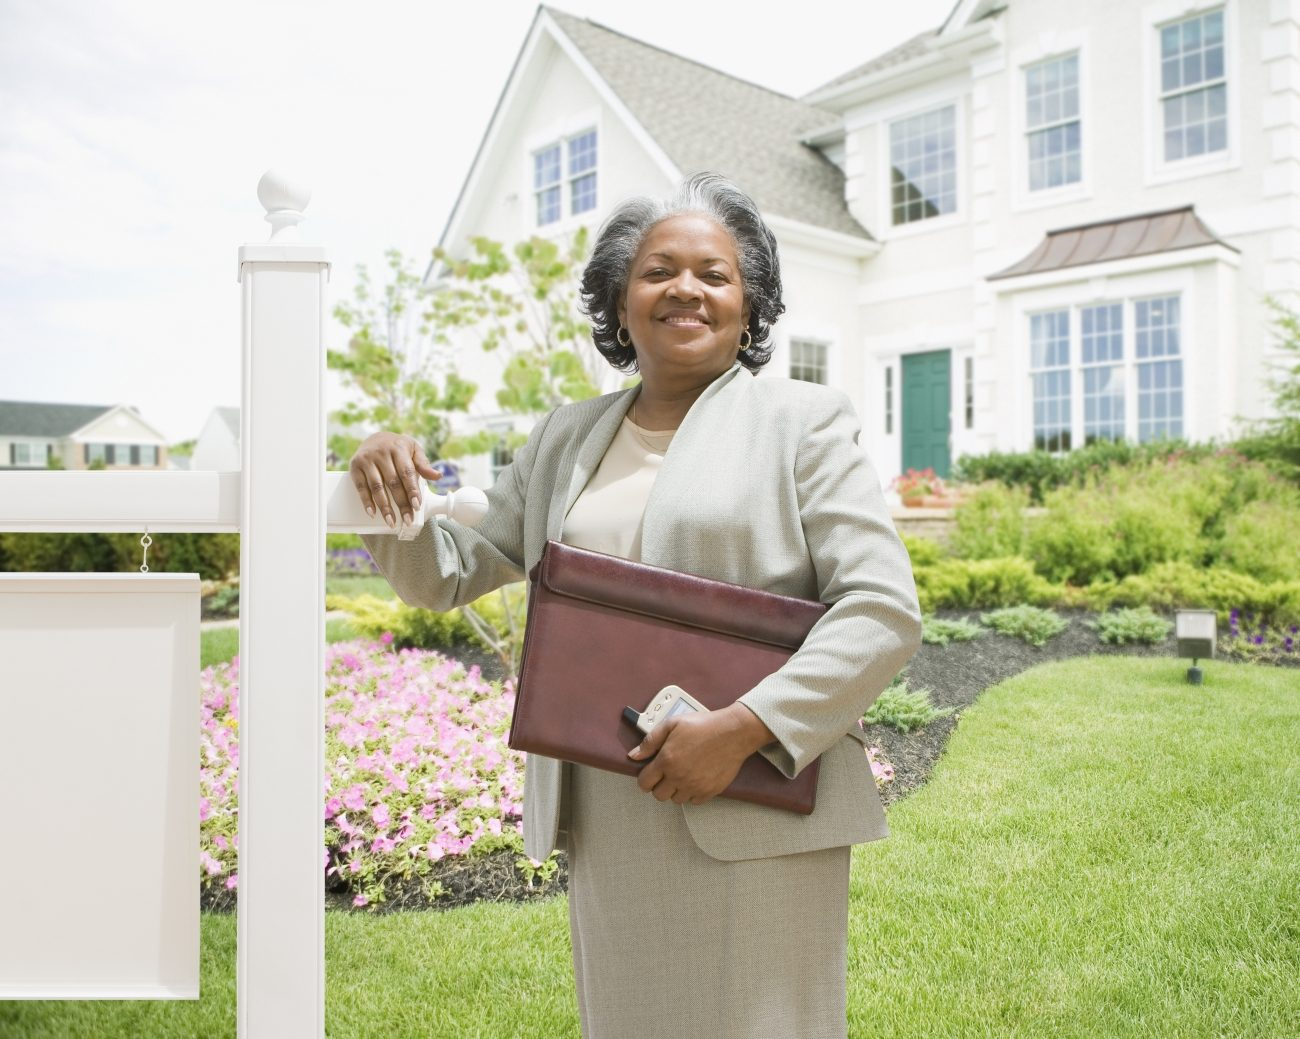 A woman standing in front of a house for sale sign, holding a briefcase and phone